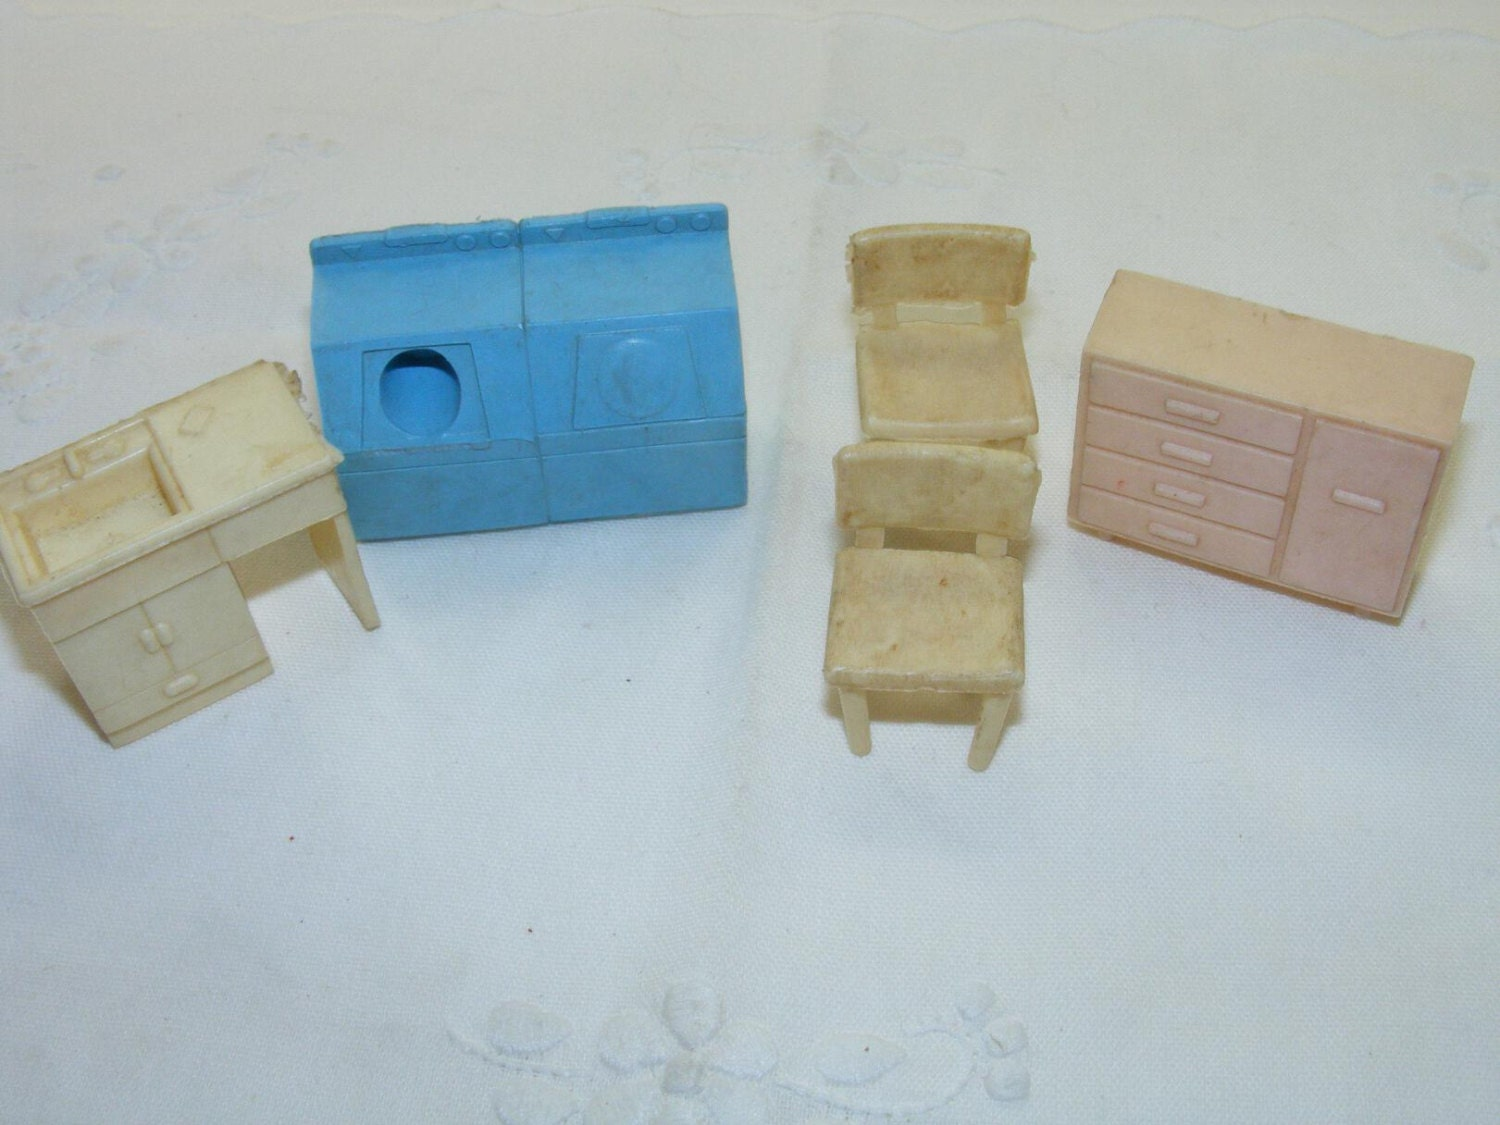 1960s Vintage Toy Dollhouse Furniture Plastic Superior T